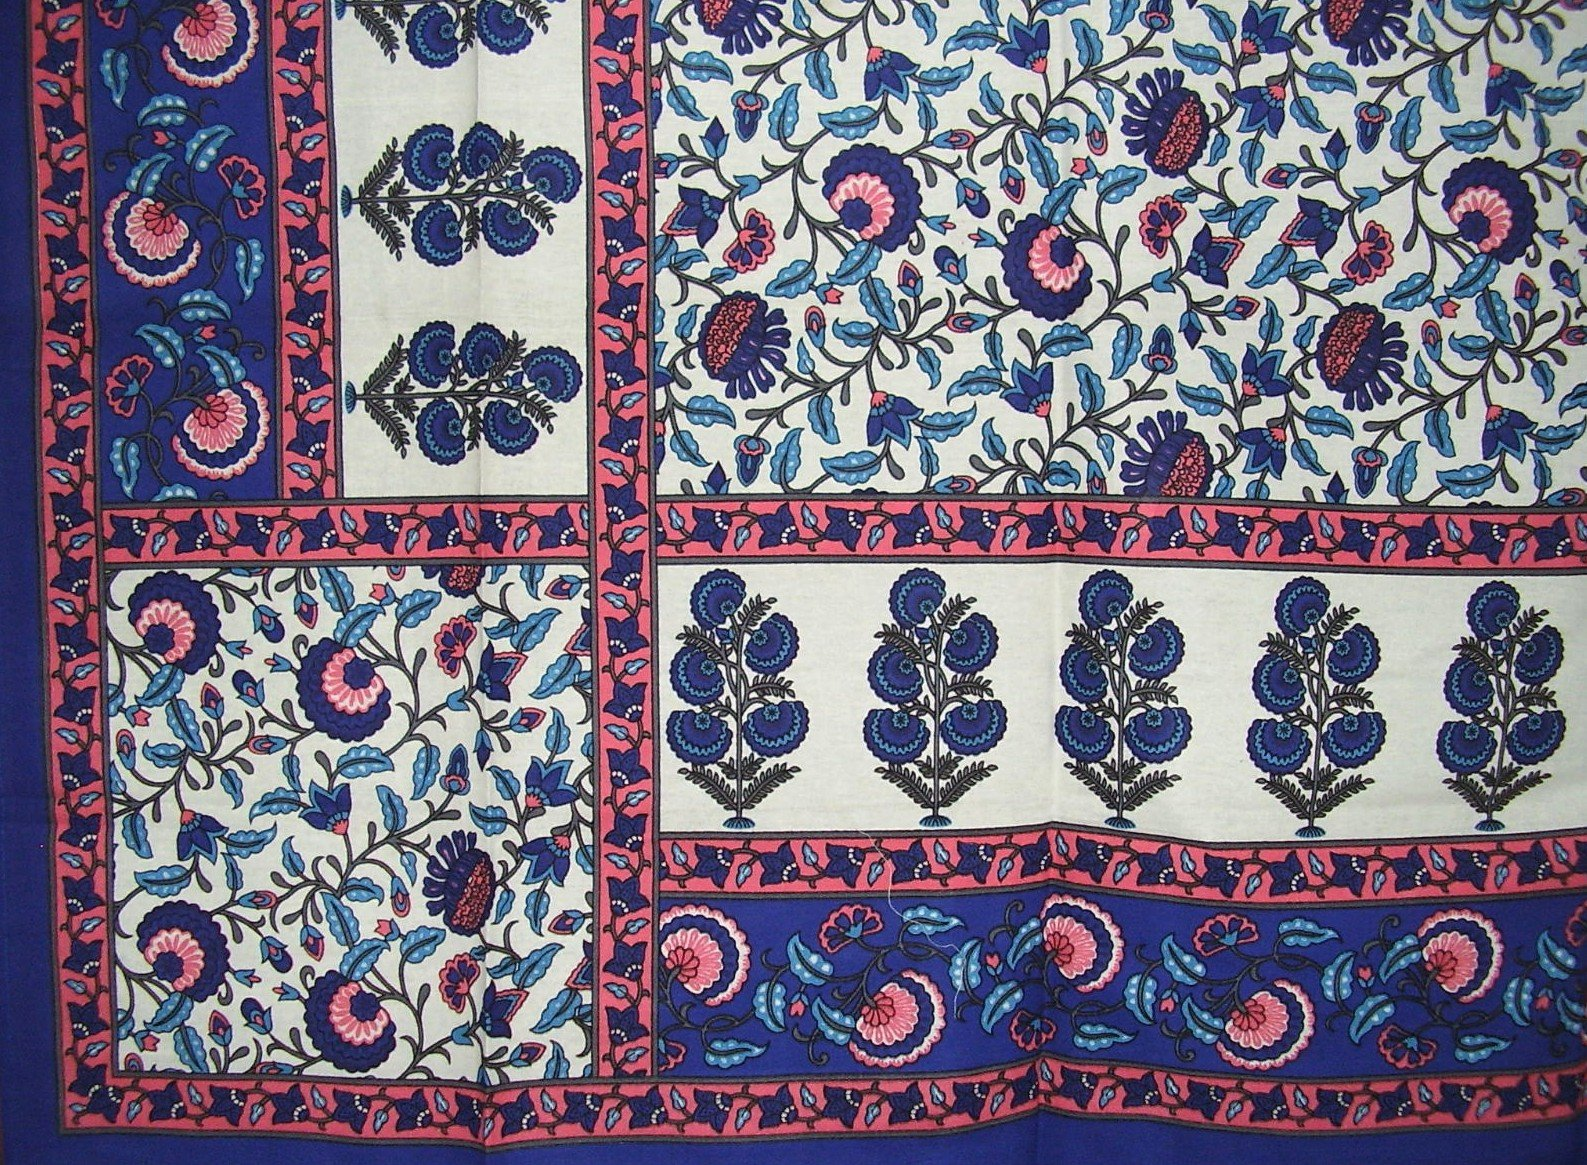 India Arts Floral Print Tapestry Cotton Bedspread 104'' x 88'' Full Blue